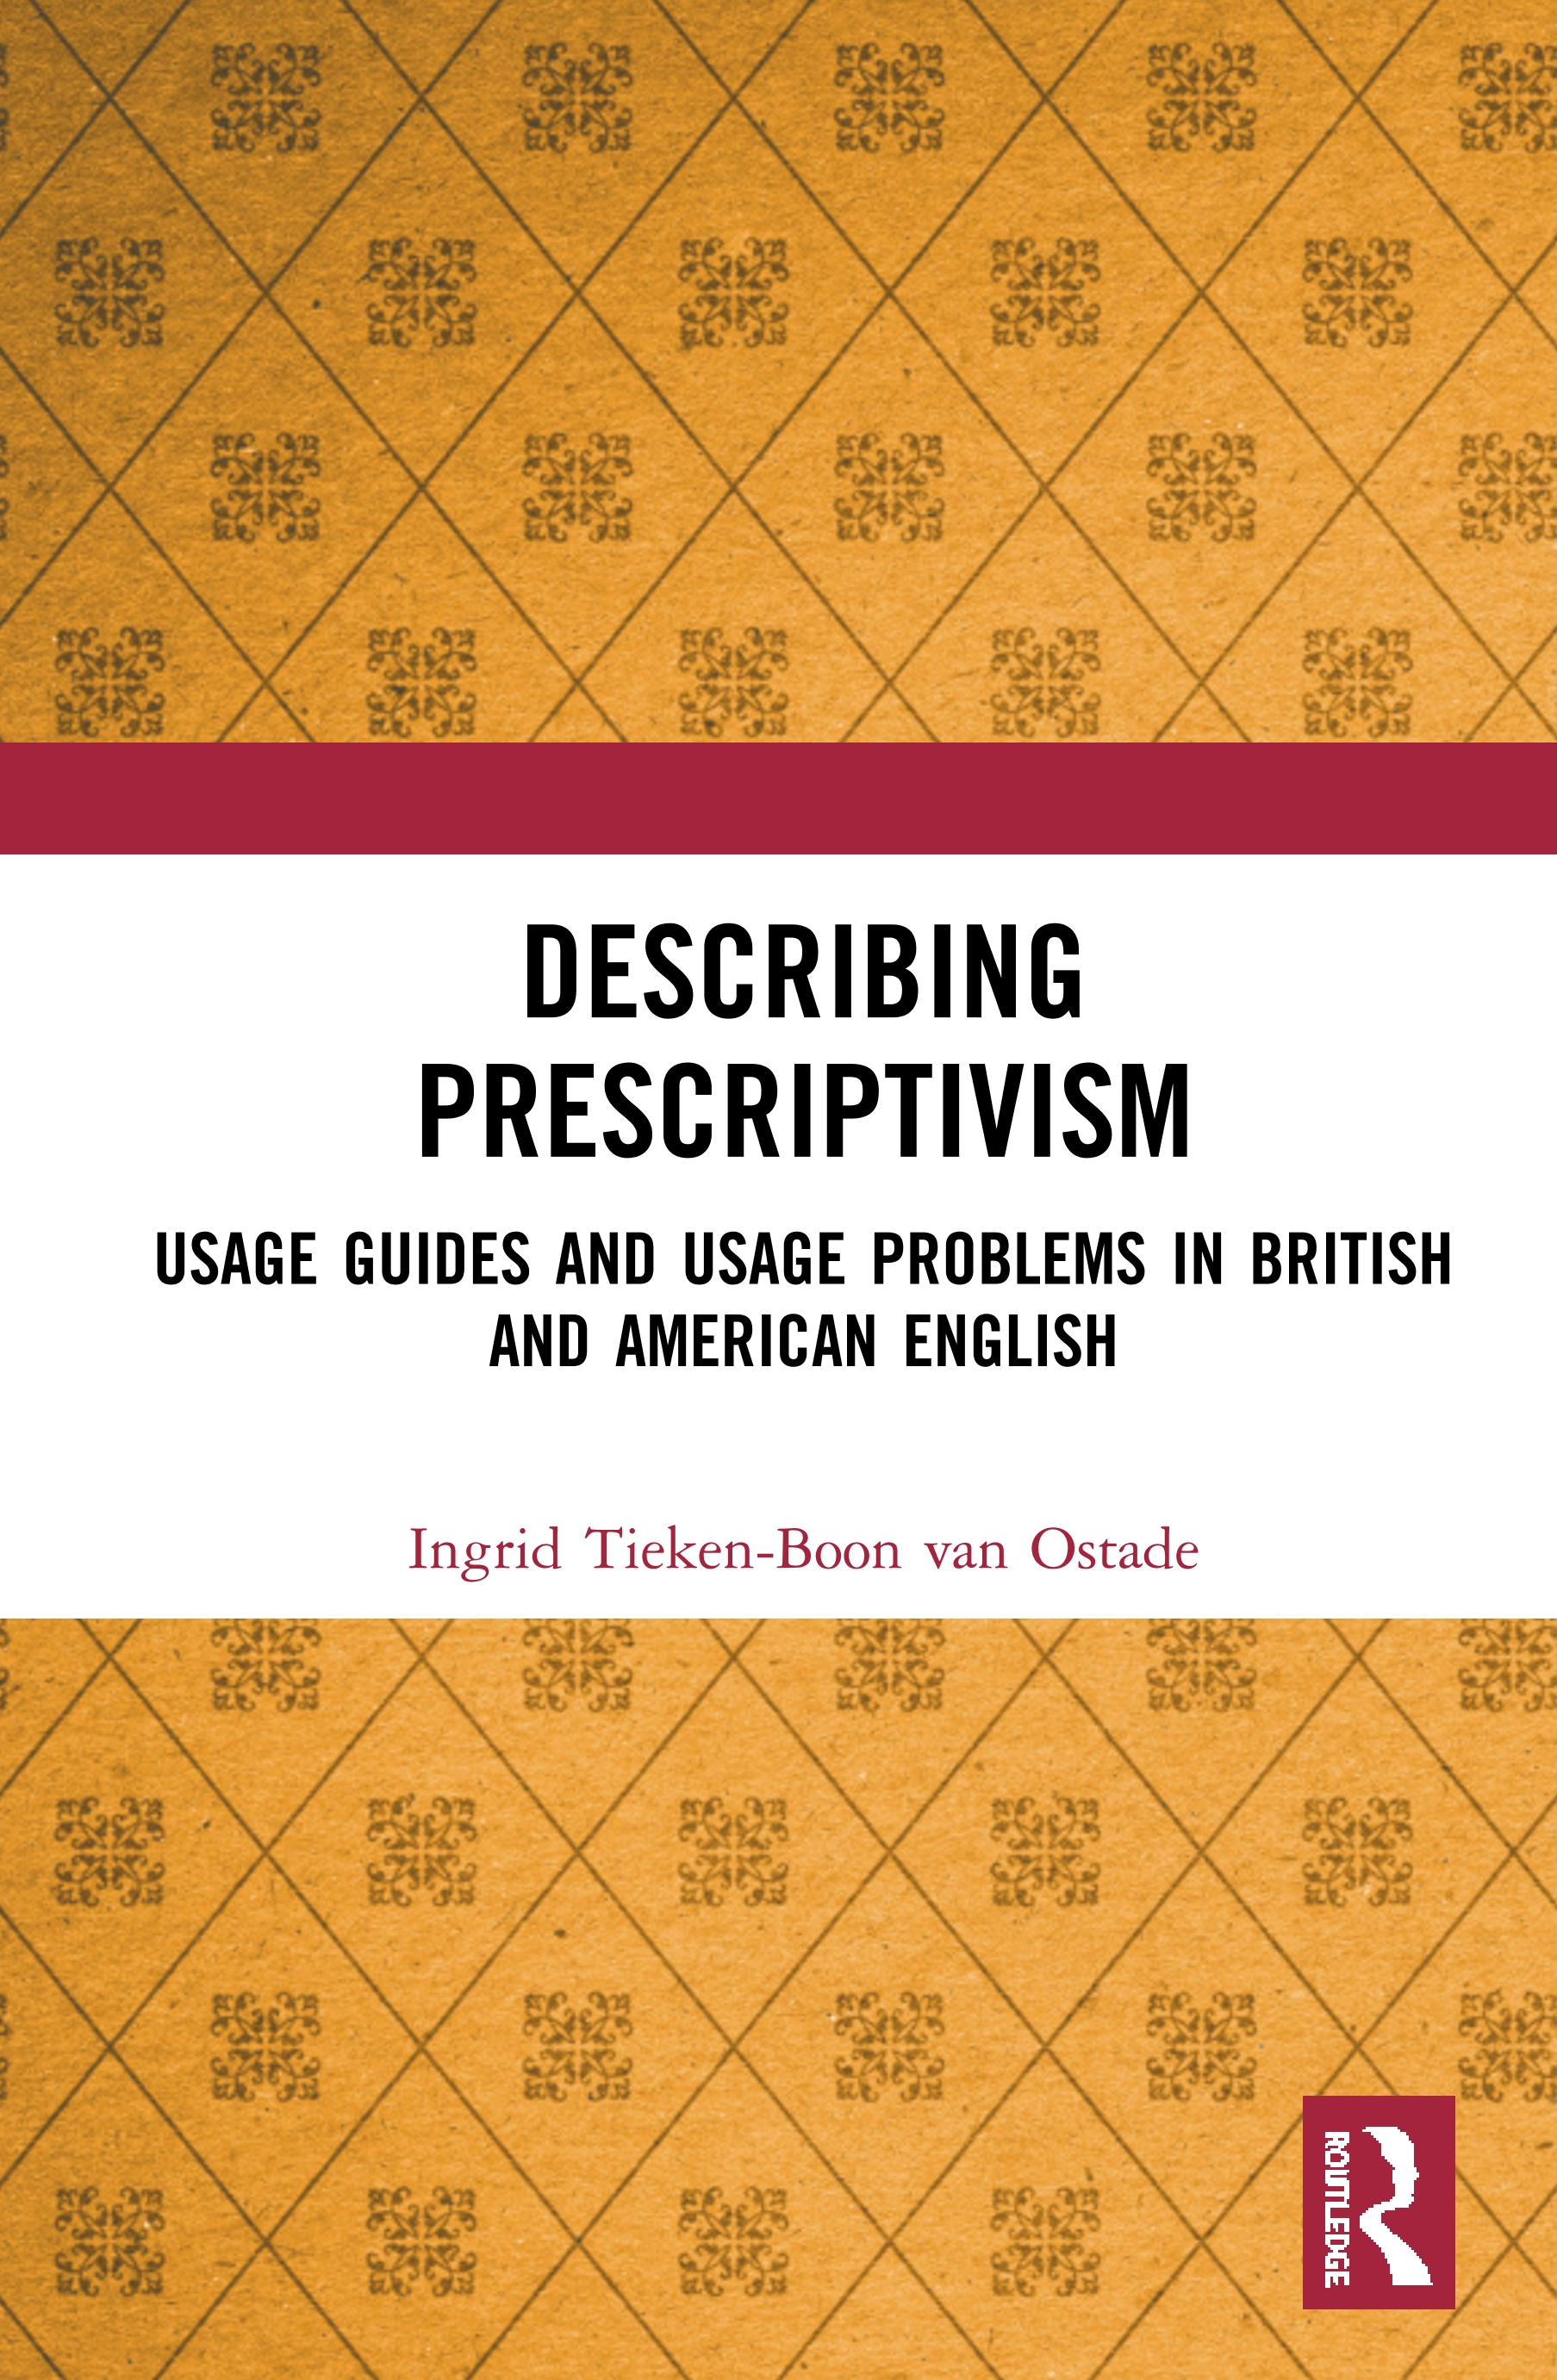 Describing Prescriptivism: Usage guides and usage problems in British and American English book cover